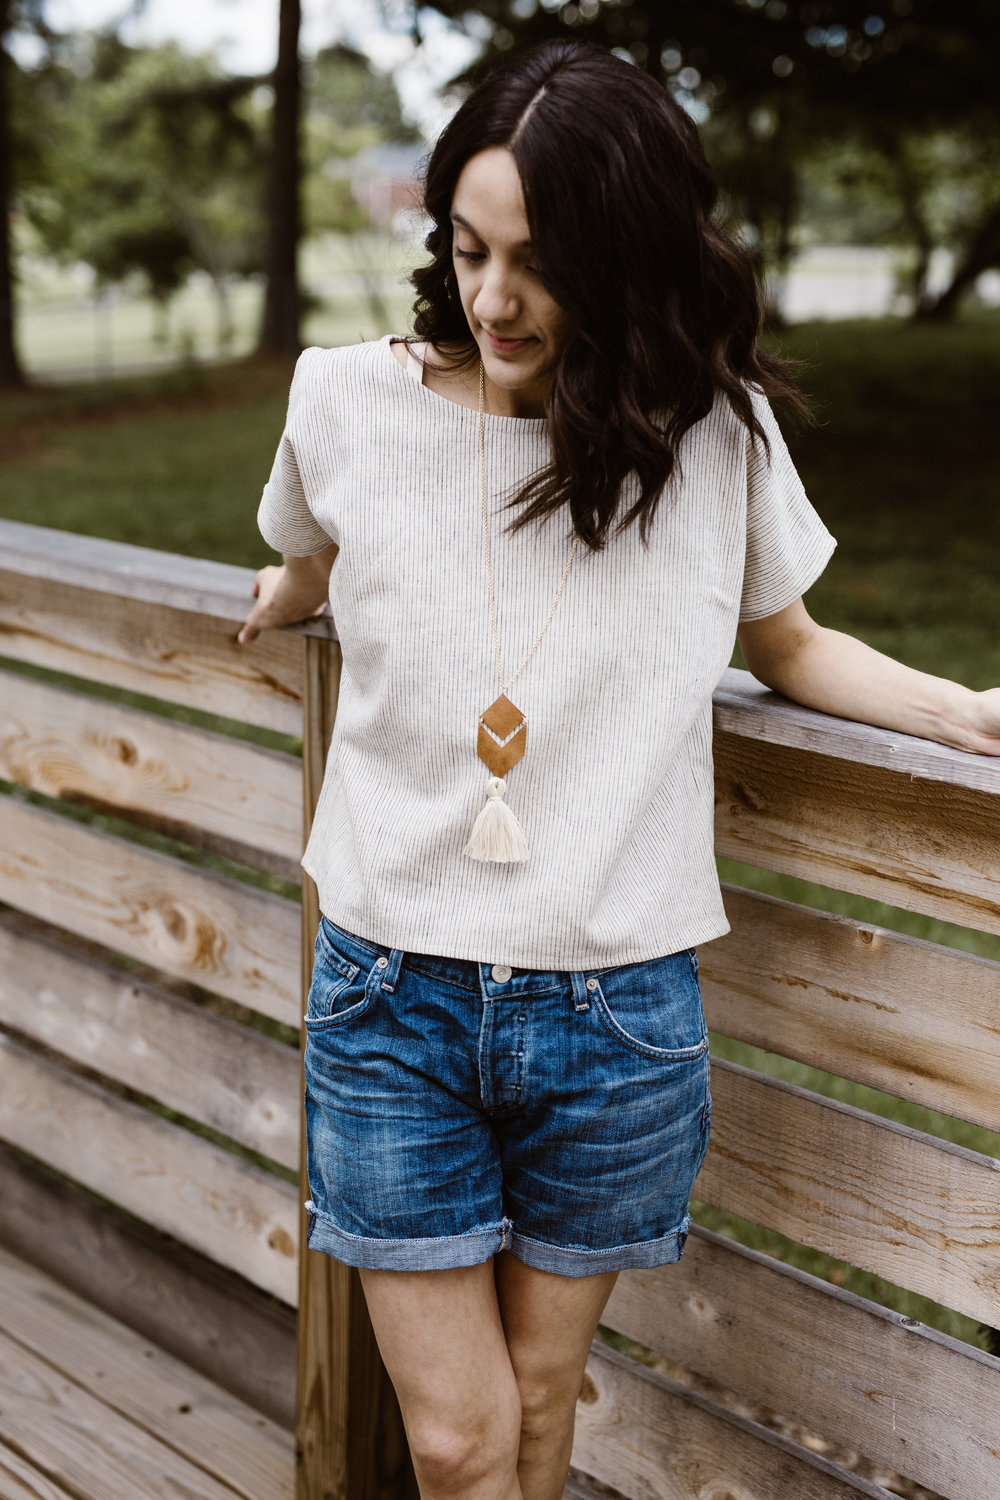 Wearing: Two Fold Clothing Krissy Tee and Sela Designs Belle Necklace